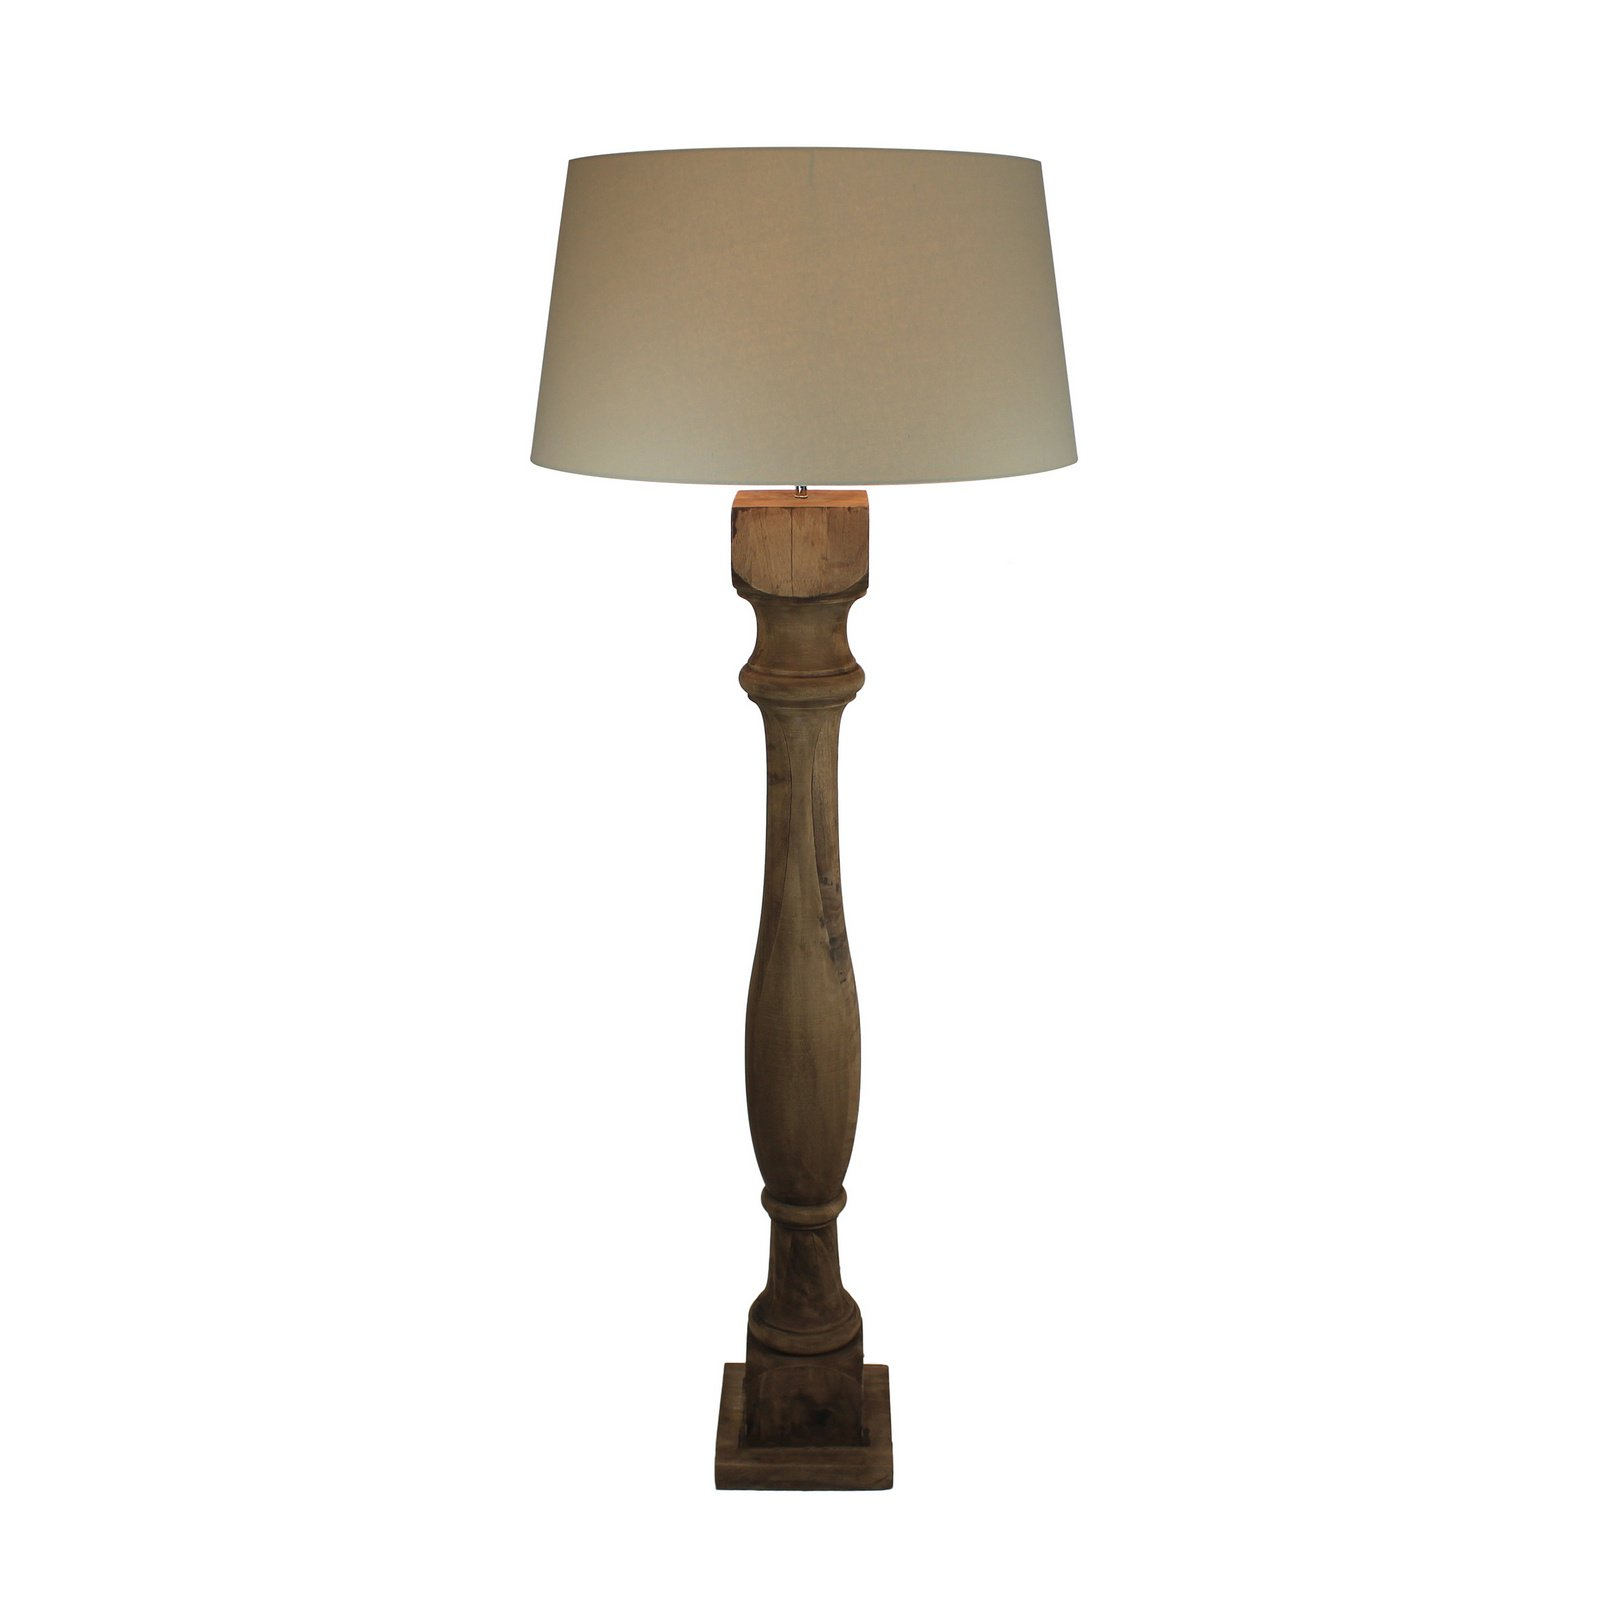 Urban Designs Rustic 64-Inch Tall Handcrafted Solid Wood Floor Lamp